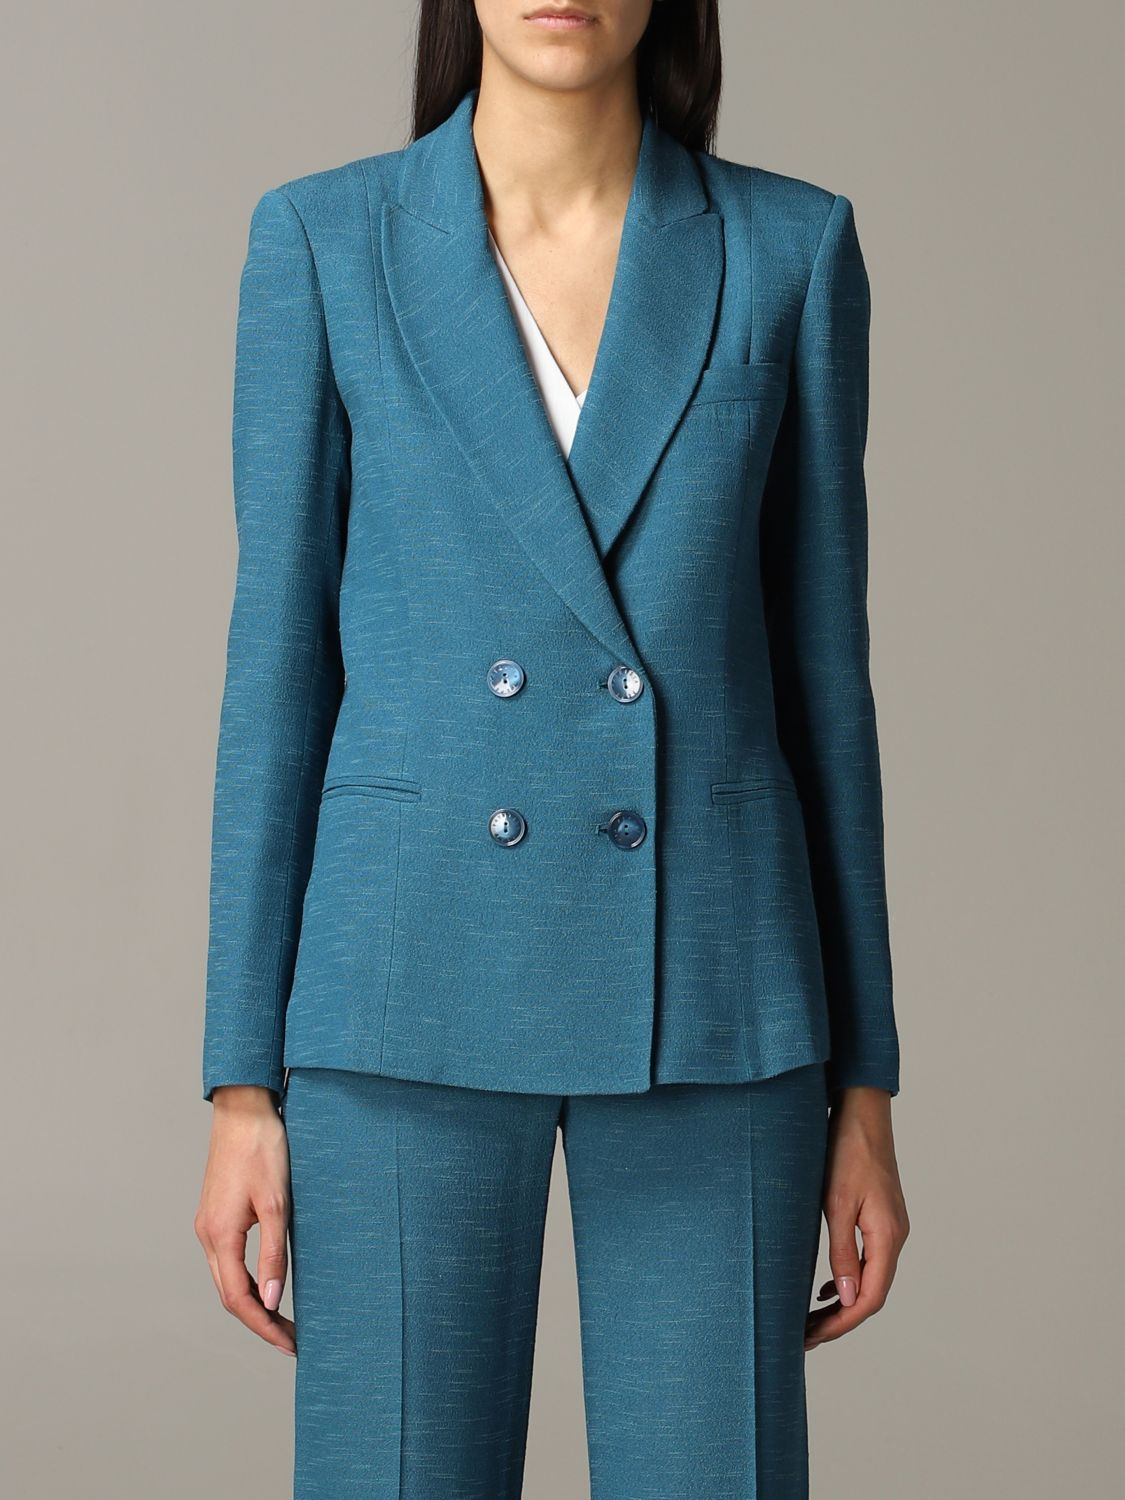 Patrizia Pepe double-breasted jacket teal 1